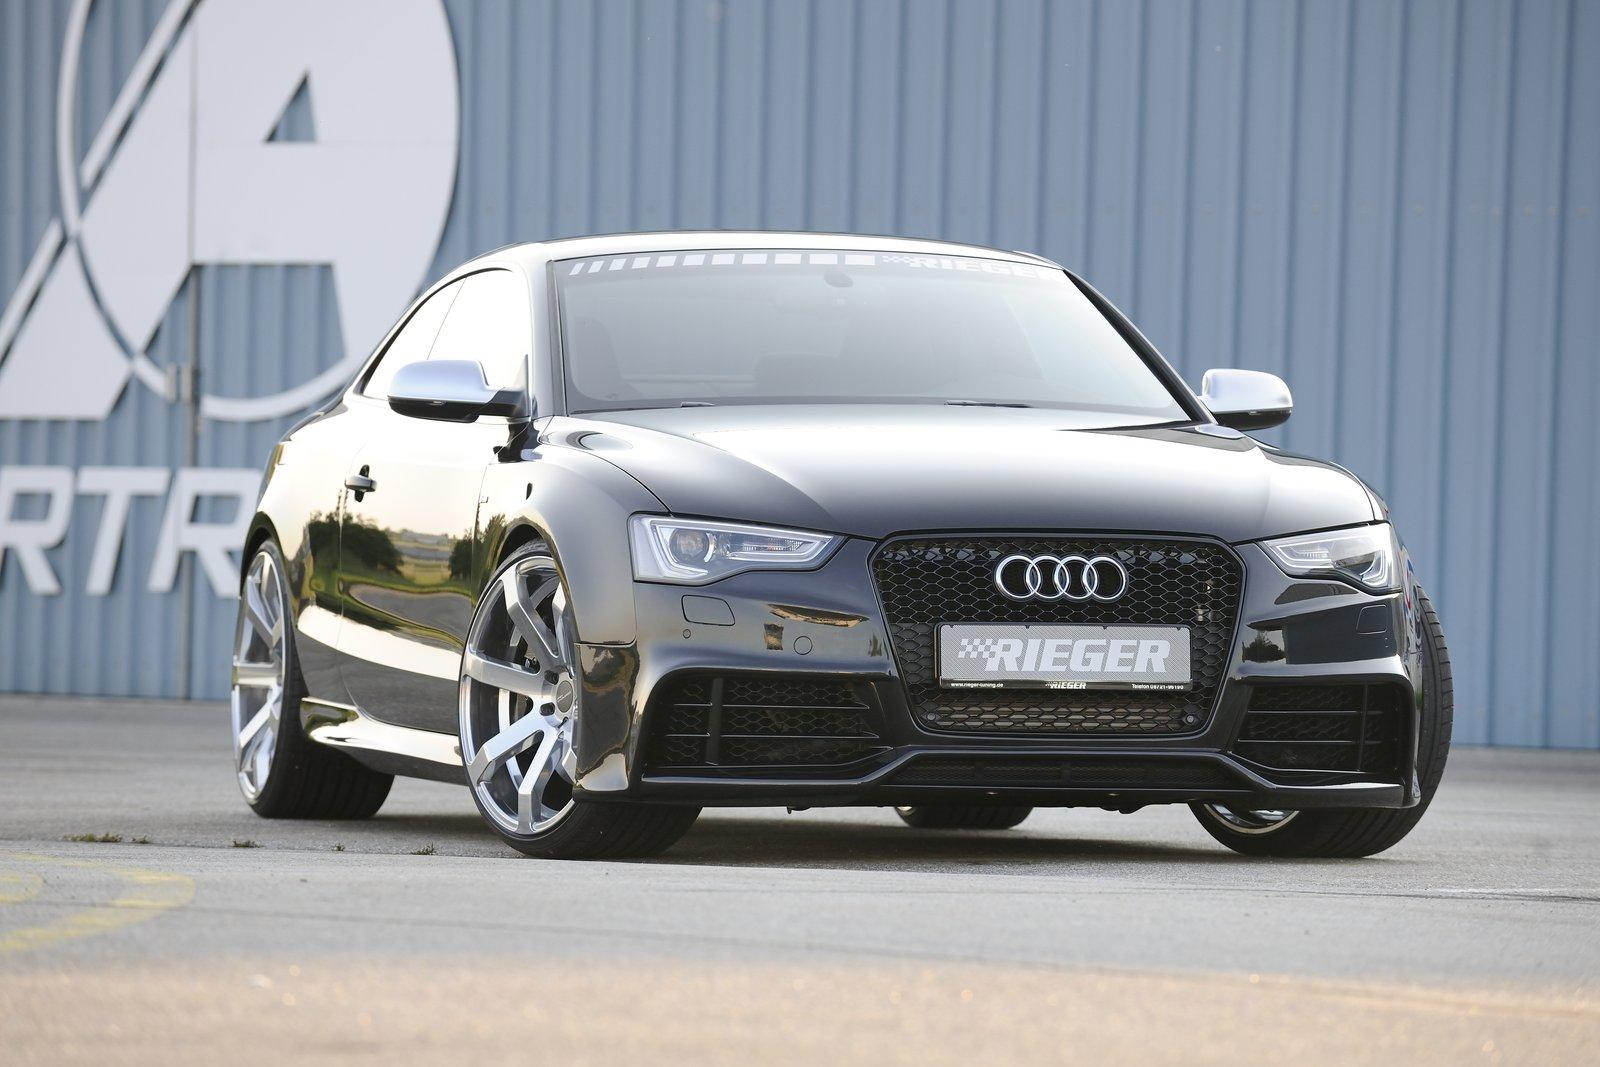 2012-Audi-A5-Facelift-Rieger-Tuning-7.jpg?imgmax=1800